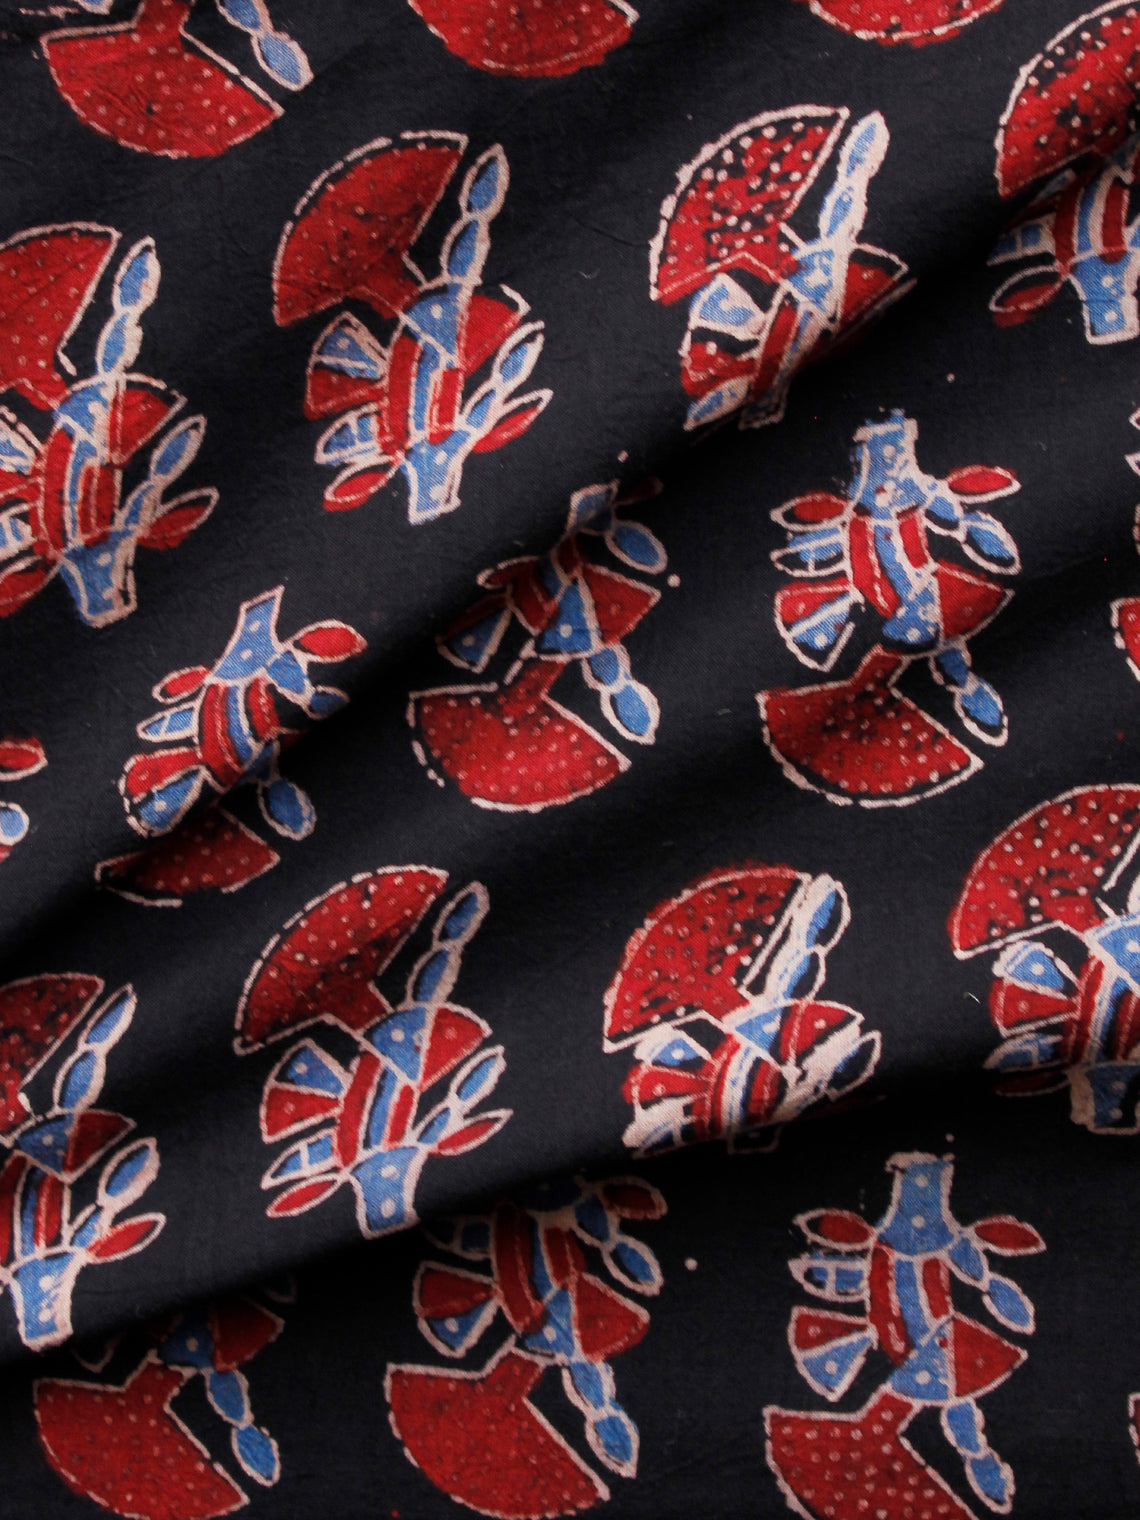 Black Red Blue Ivory Ajrakh Hand Block Printed Cotton Fabric Per Meter - F003F1665